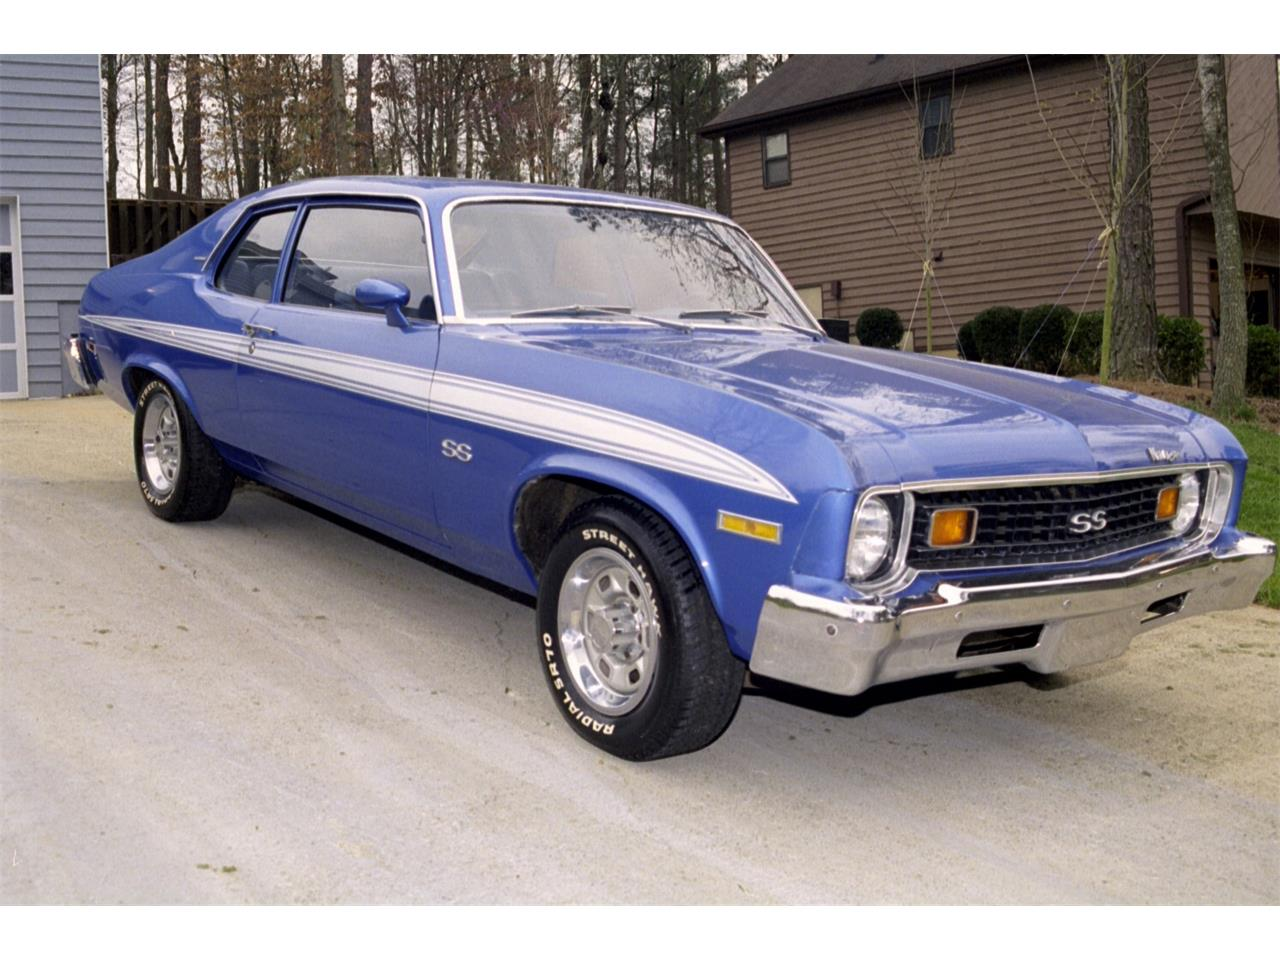 Large Picture of '73 Chevrolet Nova SS  located in Georgia - $17,000.00 - LCH6